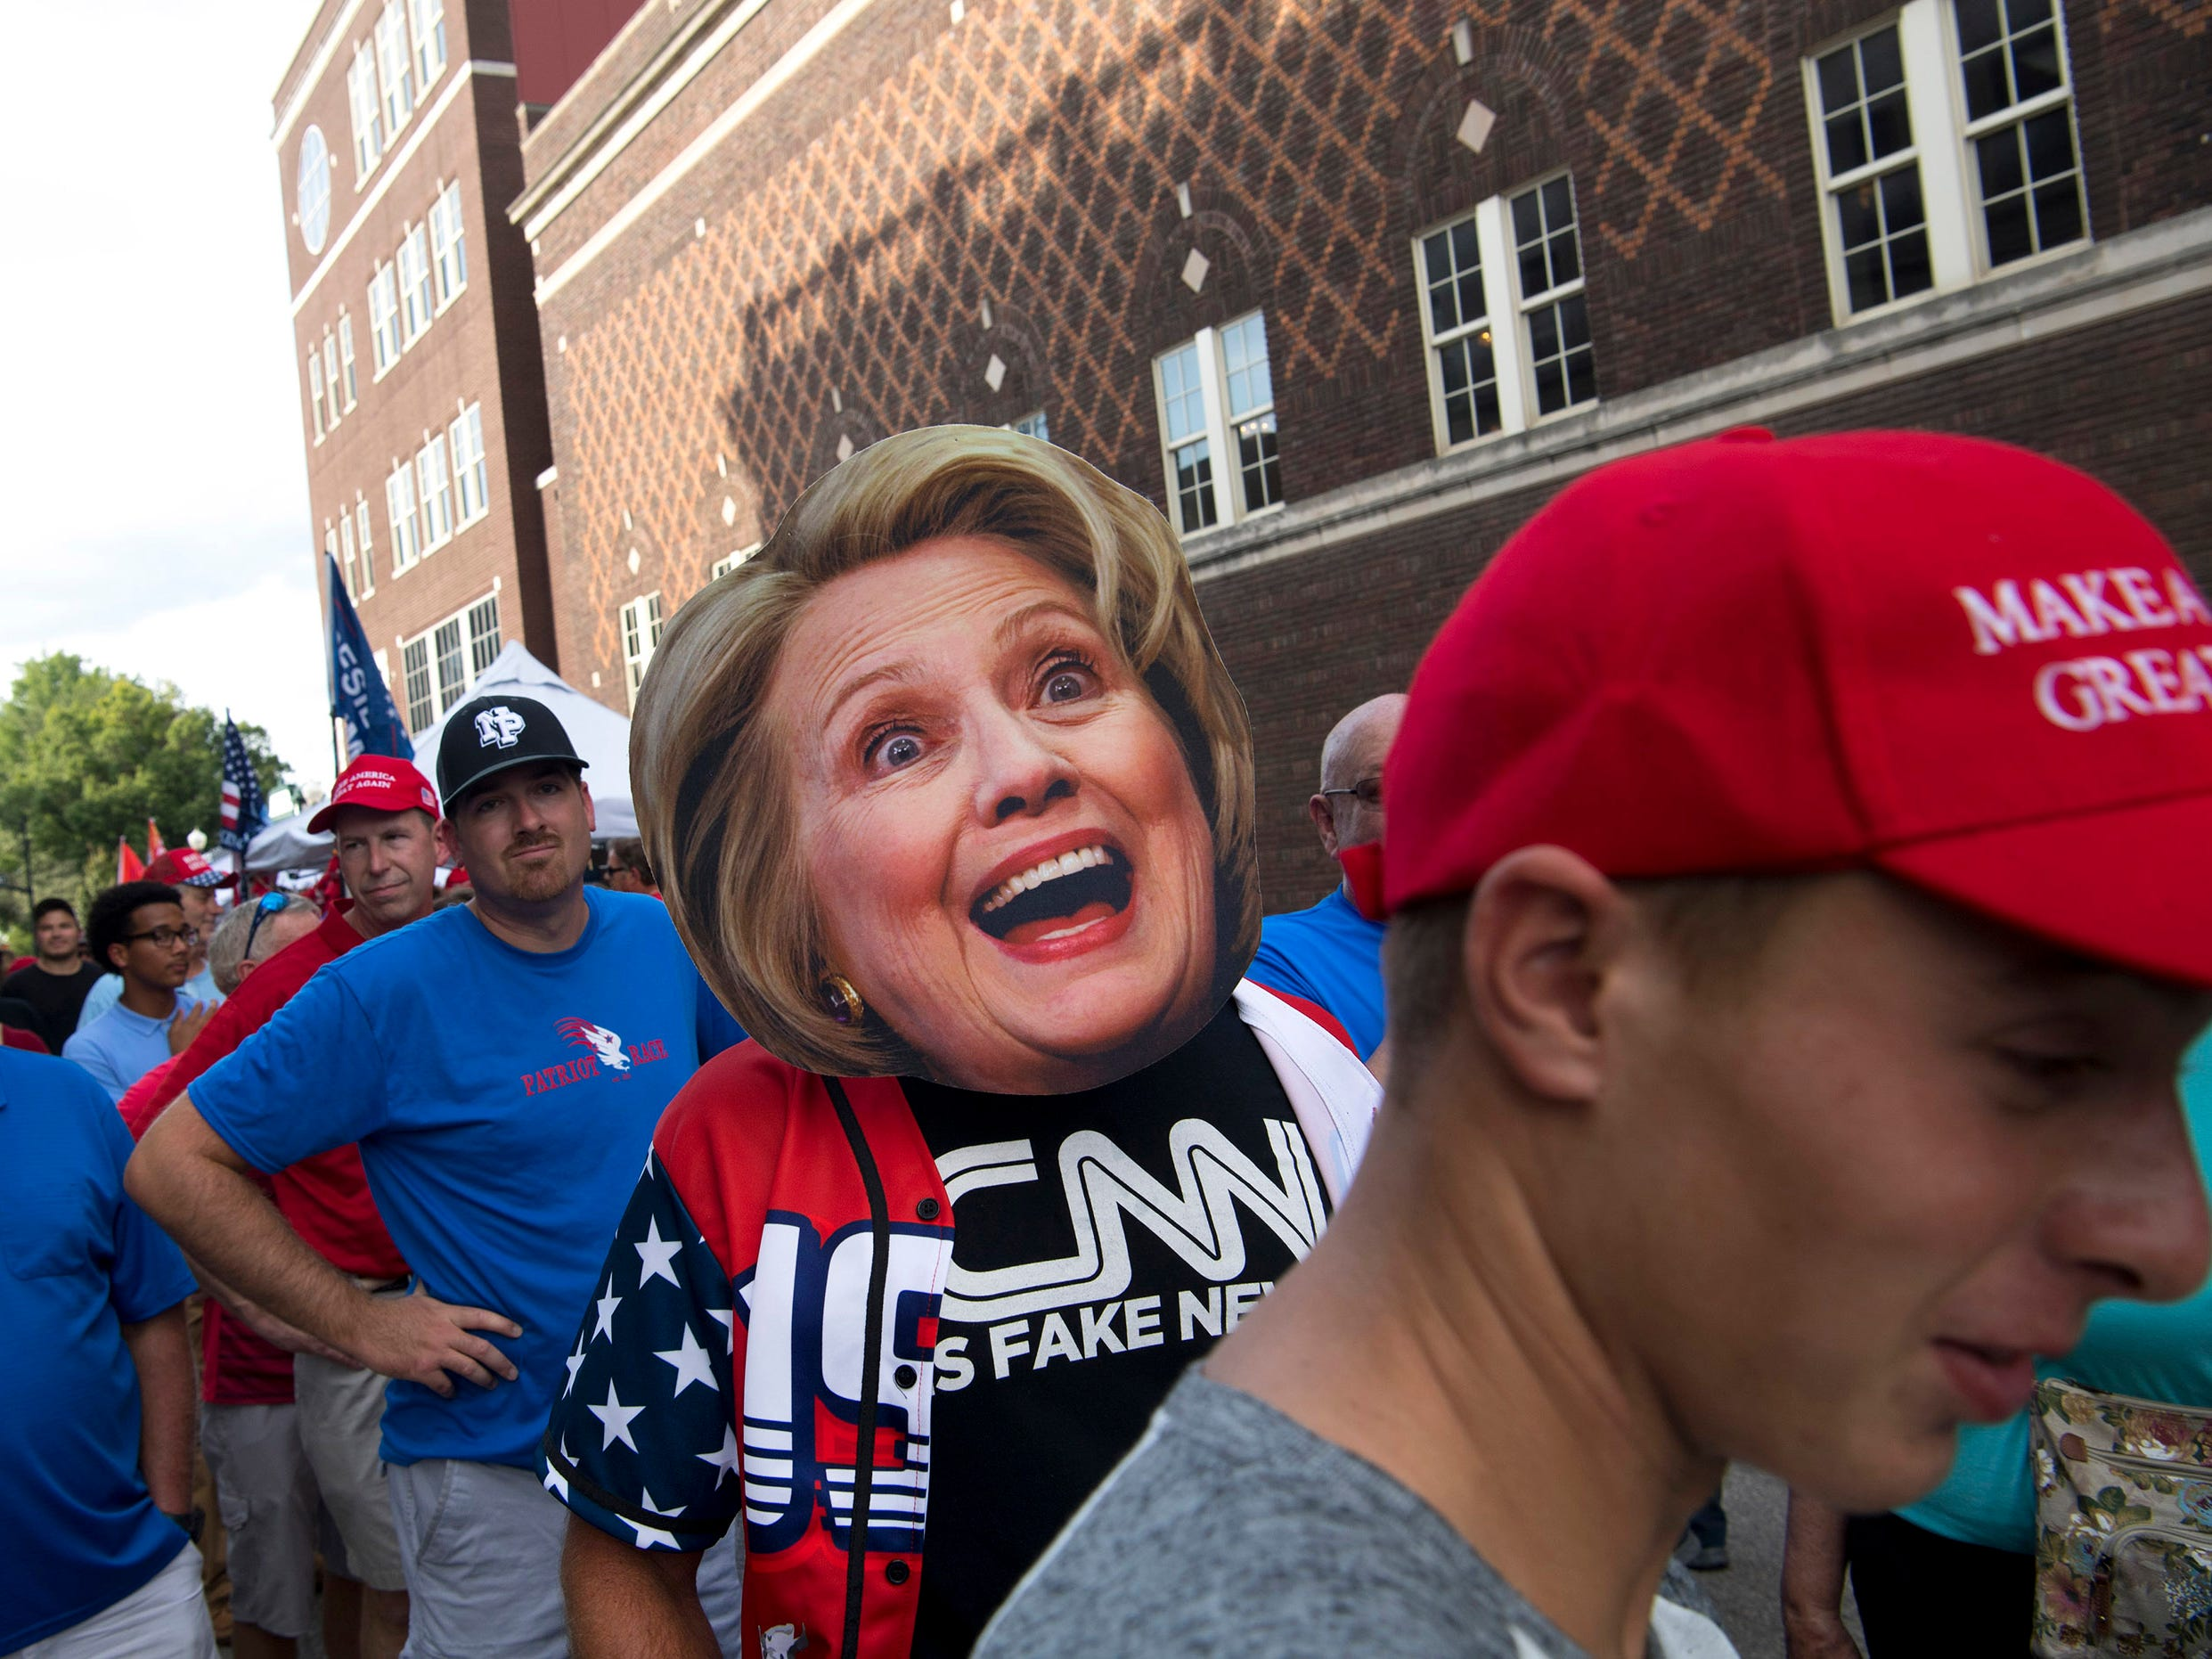 A jubilant replica of Hillary Clinton is worn by a Donald Trump supporter before President Trump's campaign rally at the Ford Center in Evansville, Ind., Thursday, August 30.